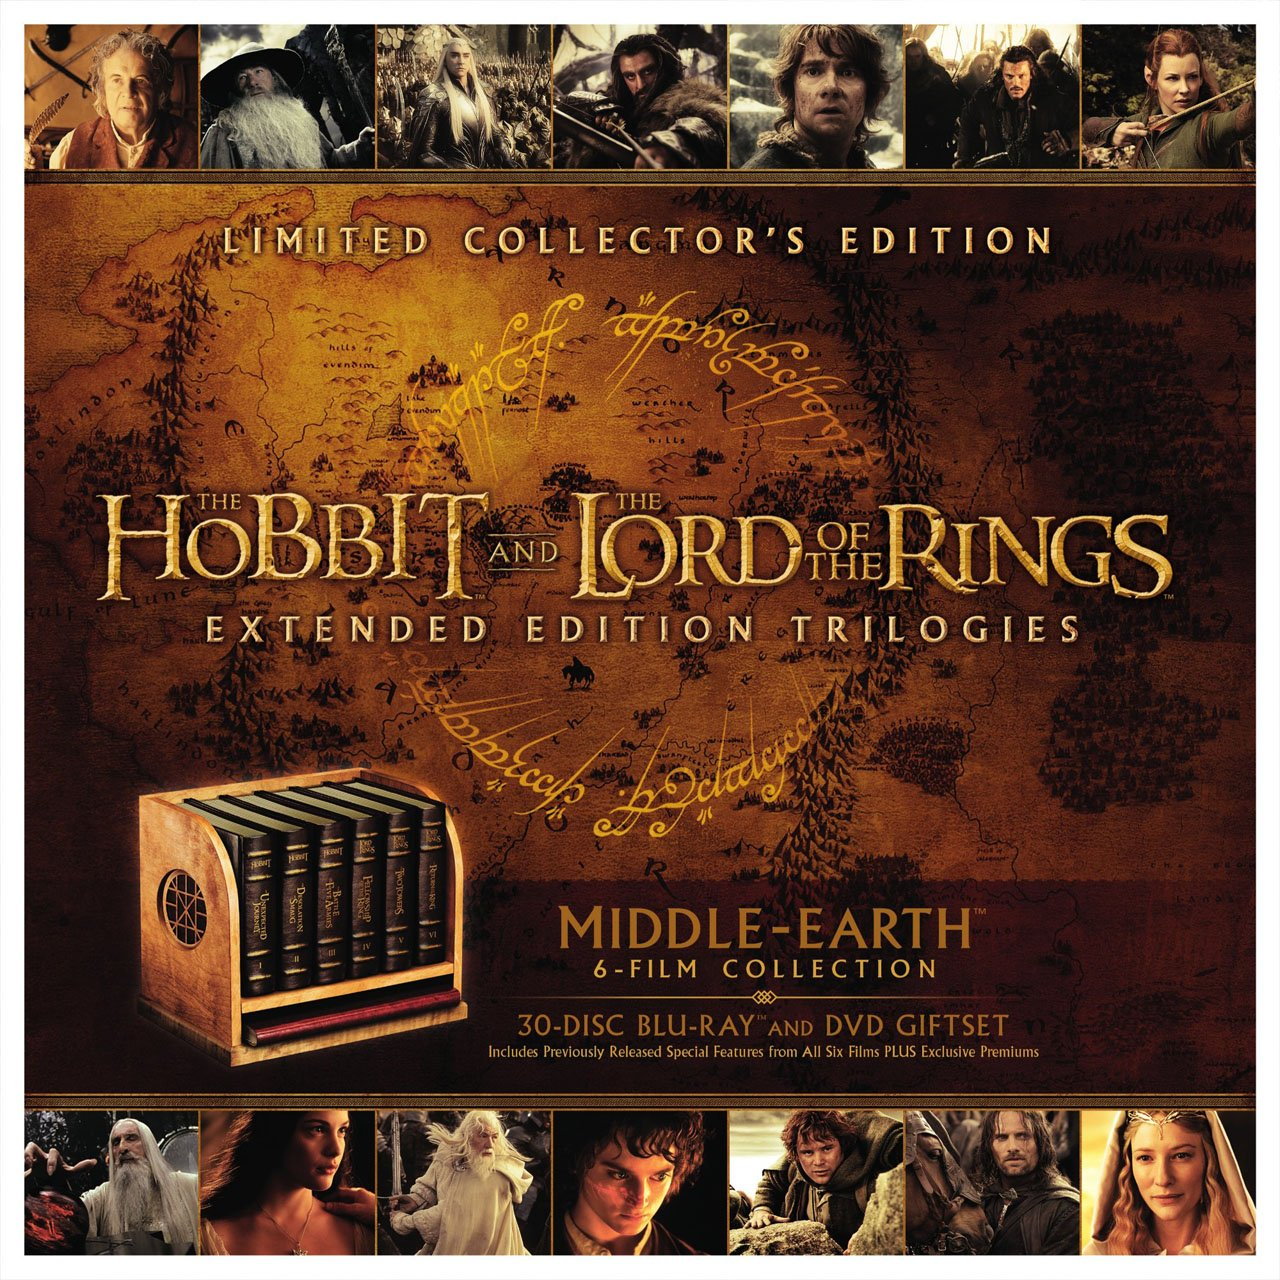 Middle-earth 6-Film Collection